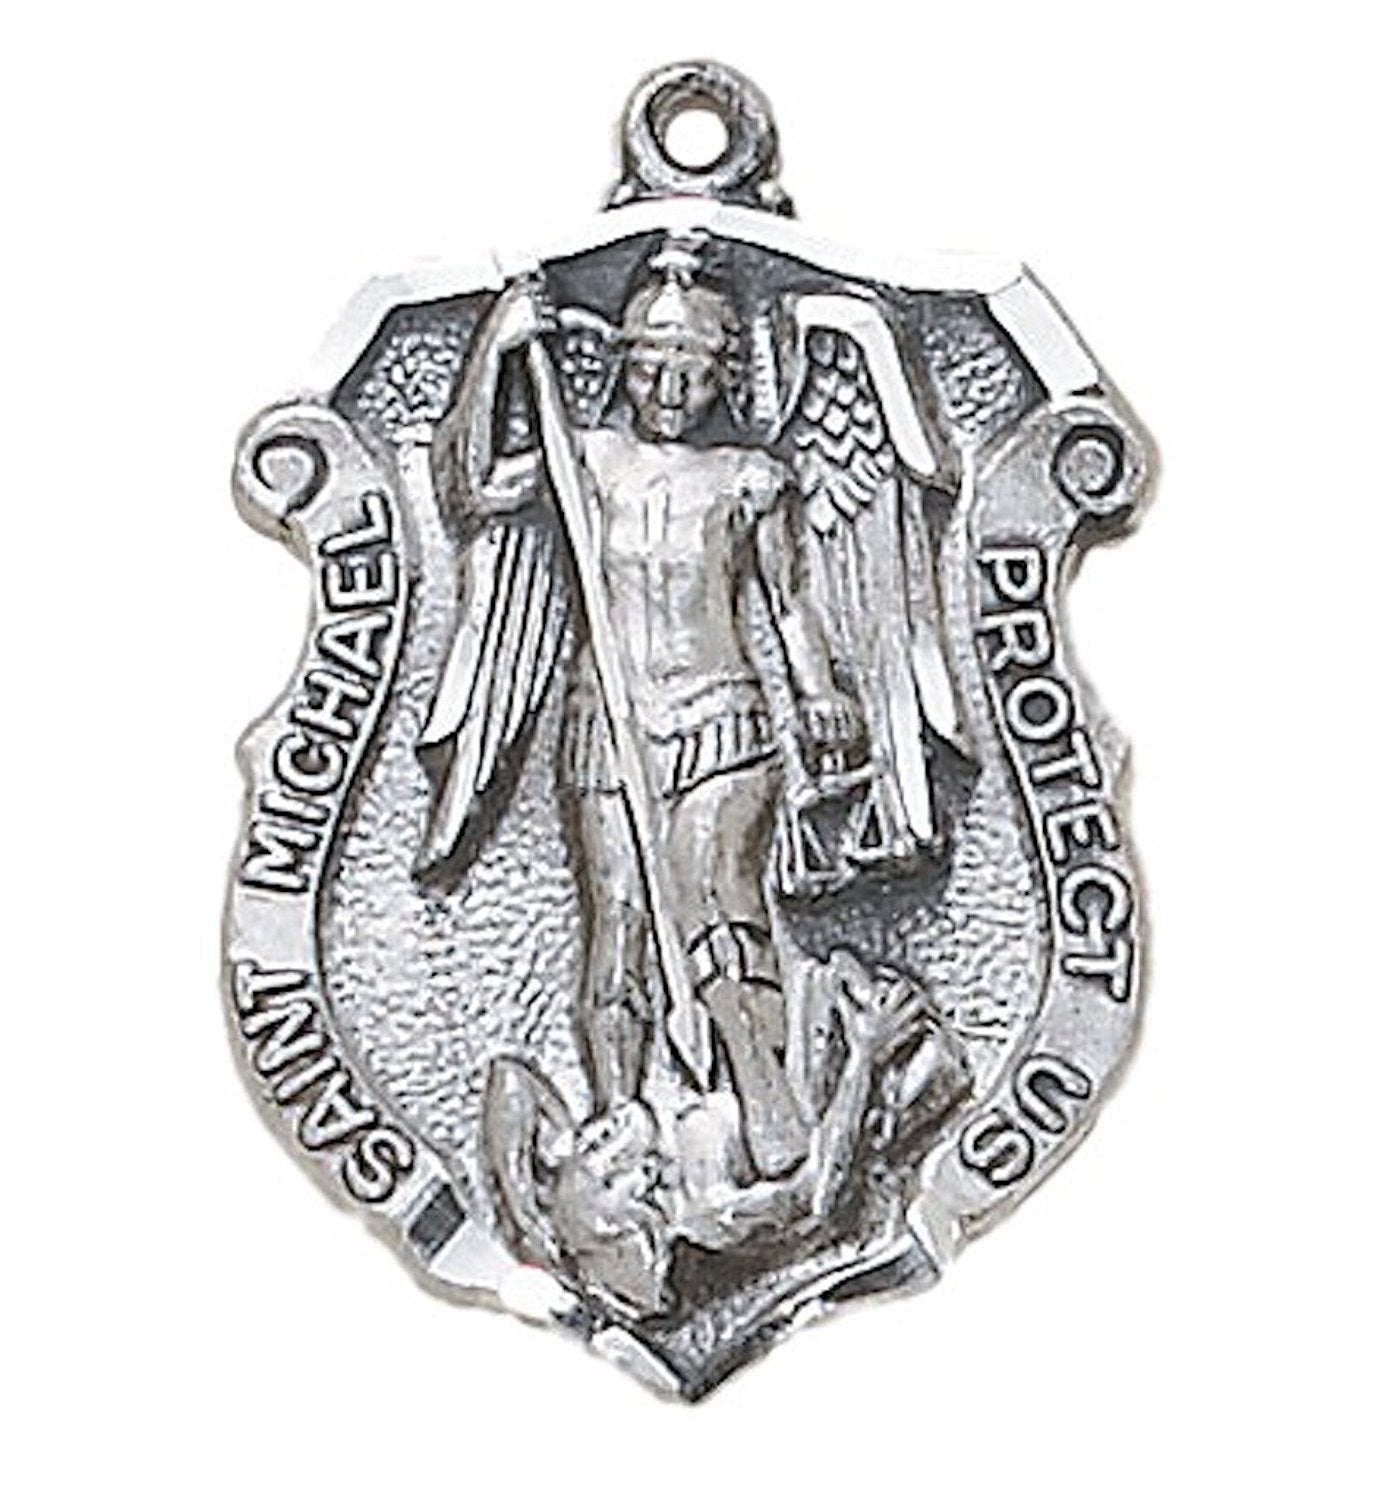 archangel demon a in pendant small saint diamond zoom sterling st charms silver necklace michael loading fighting cut charm michaels